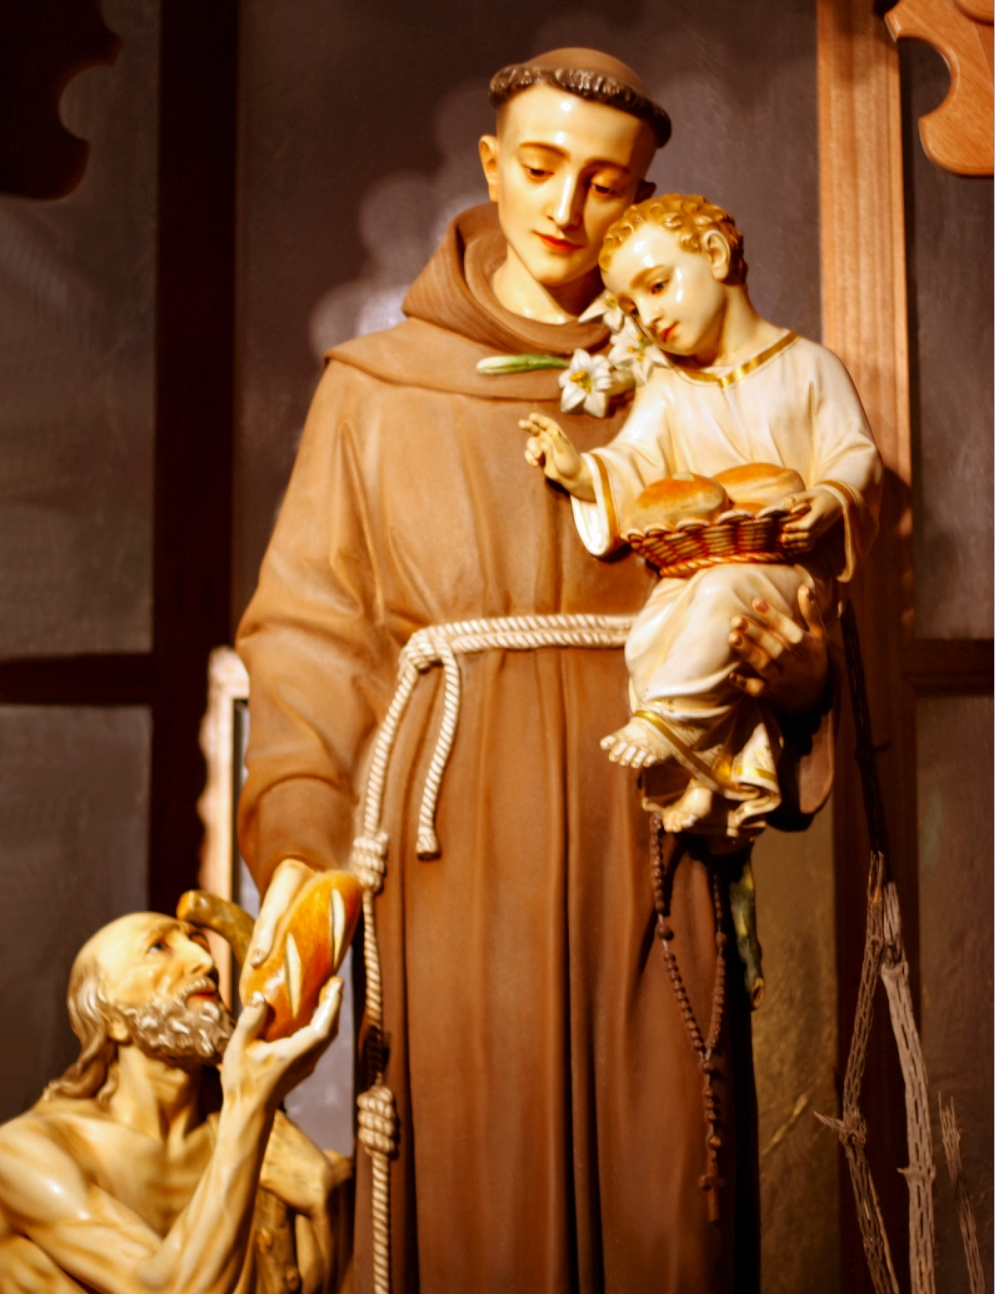 st anthony of padua St anthony's church was founded in 1891 by the missionaries of st charles (scalabrini fathers) a religious order established for the care of migrants and refugees around the world.